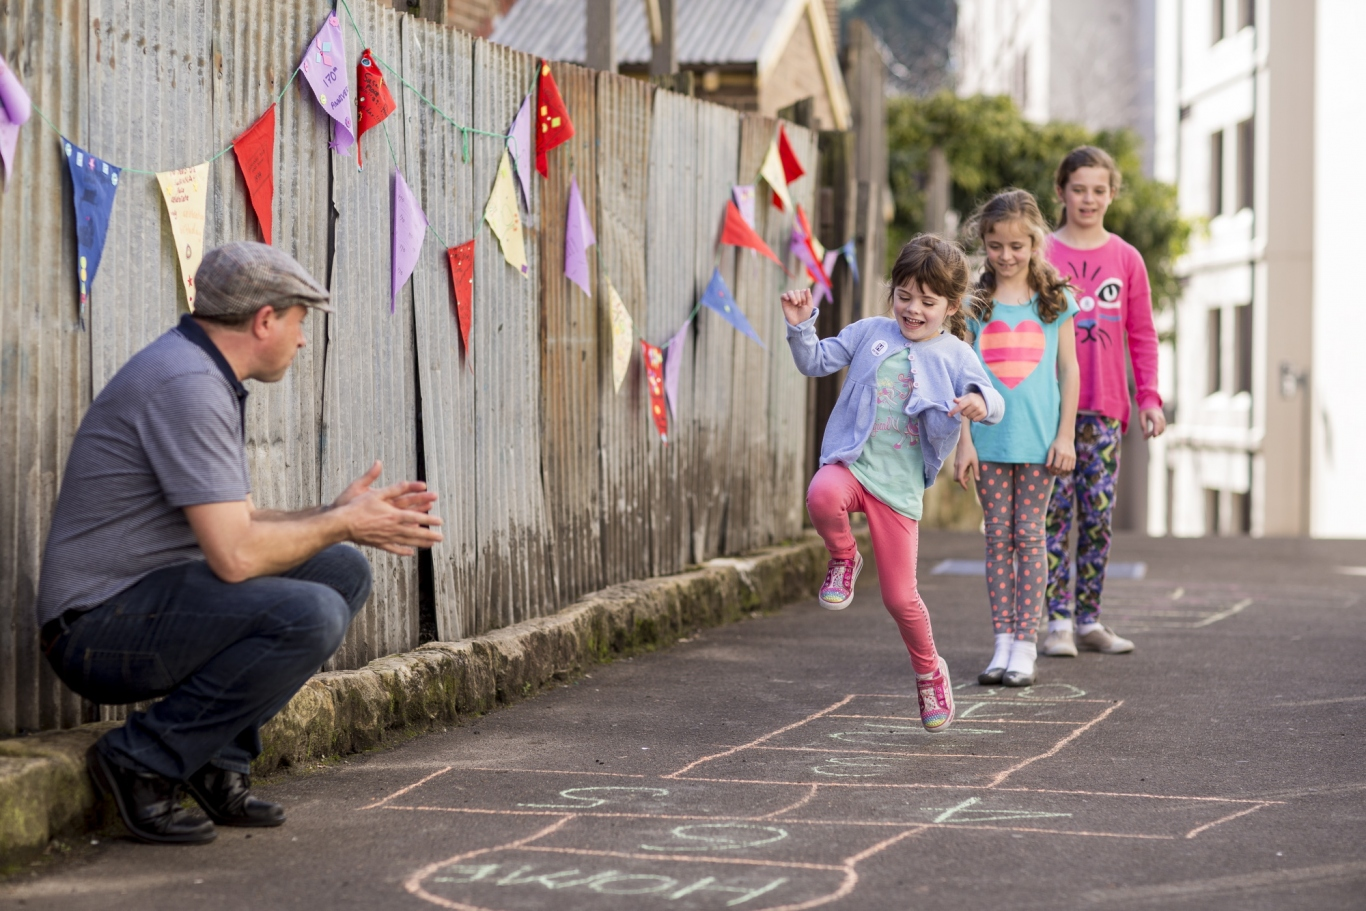 Charlotte, Coco, Chloe, Shelbi and Lani Rae playing hopscotch in Cambridge Street with volunteer Dominic Dwyer looking on